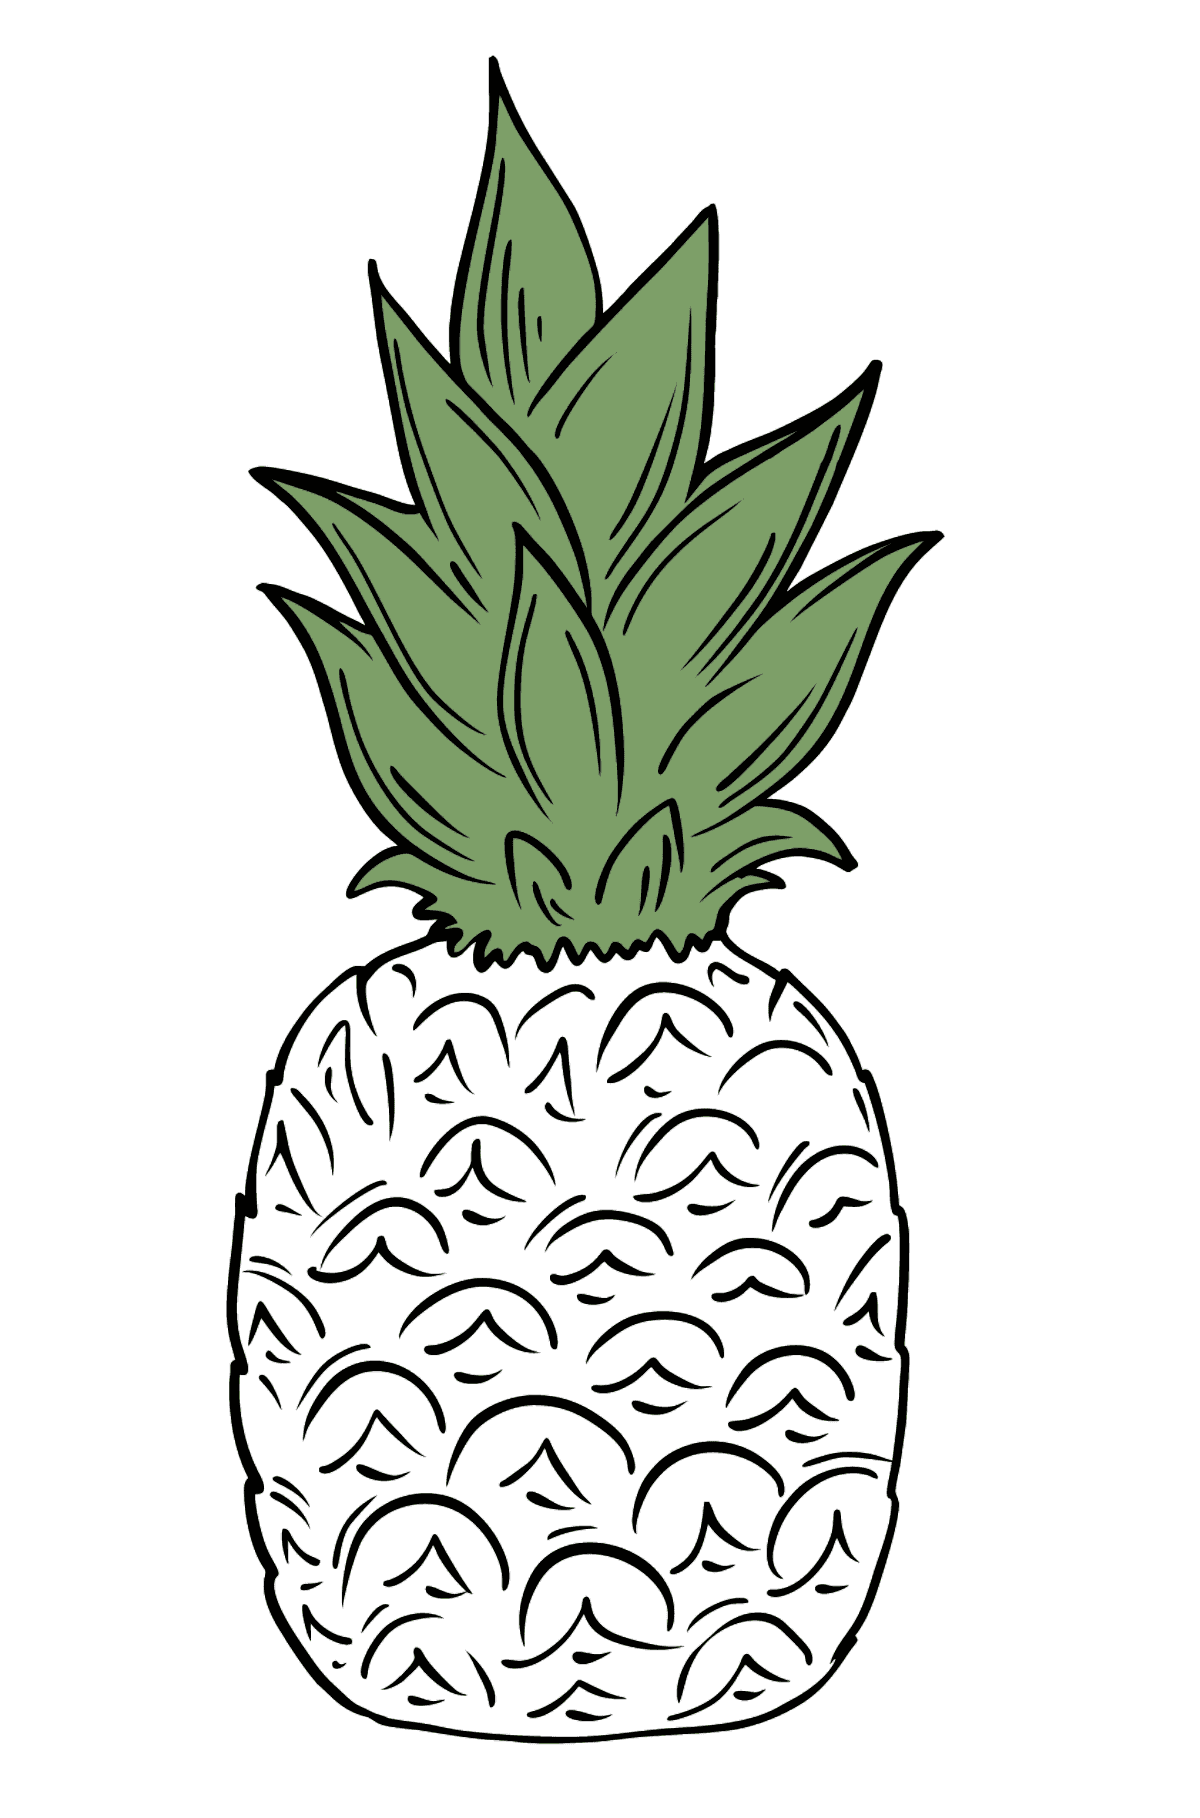 Pineapple coloring page - Coloring Pages for Kids